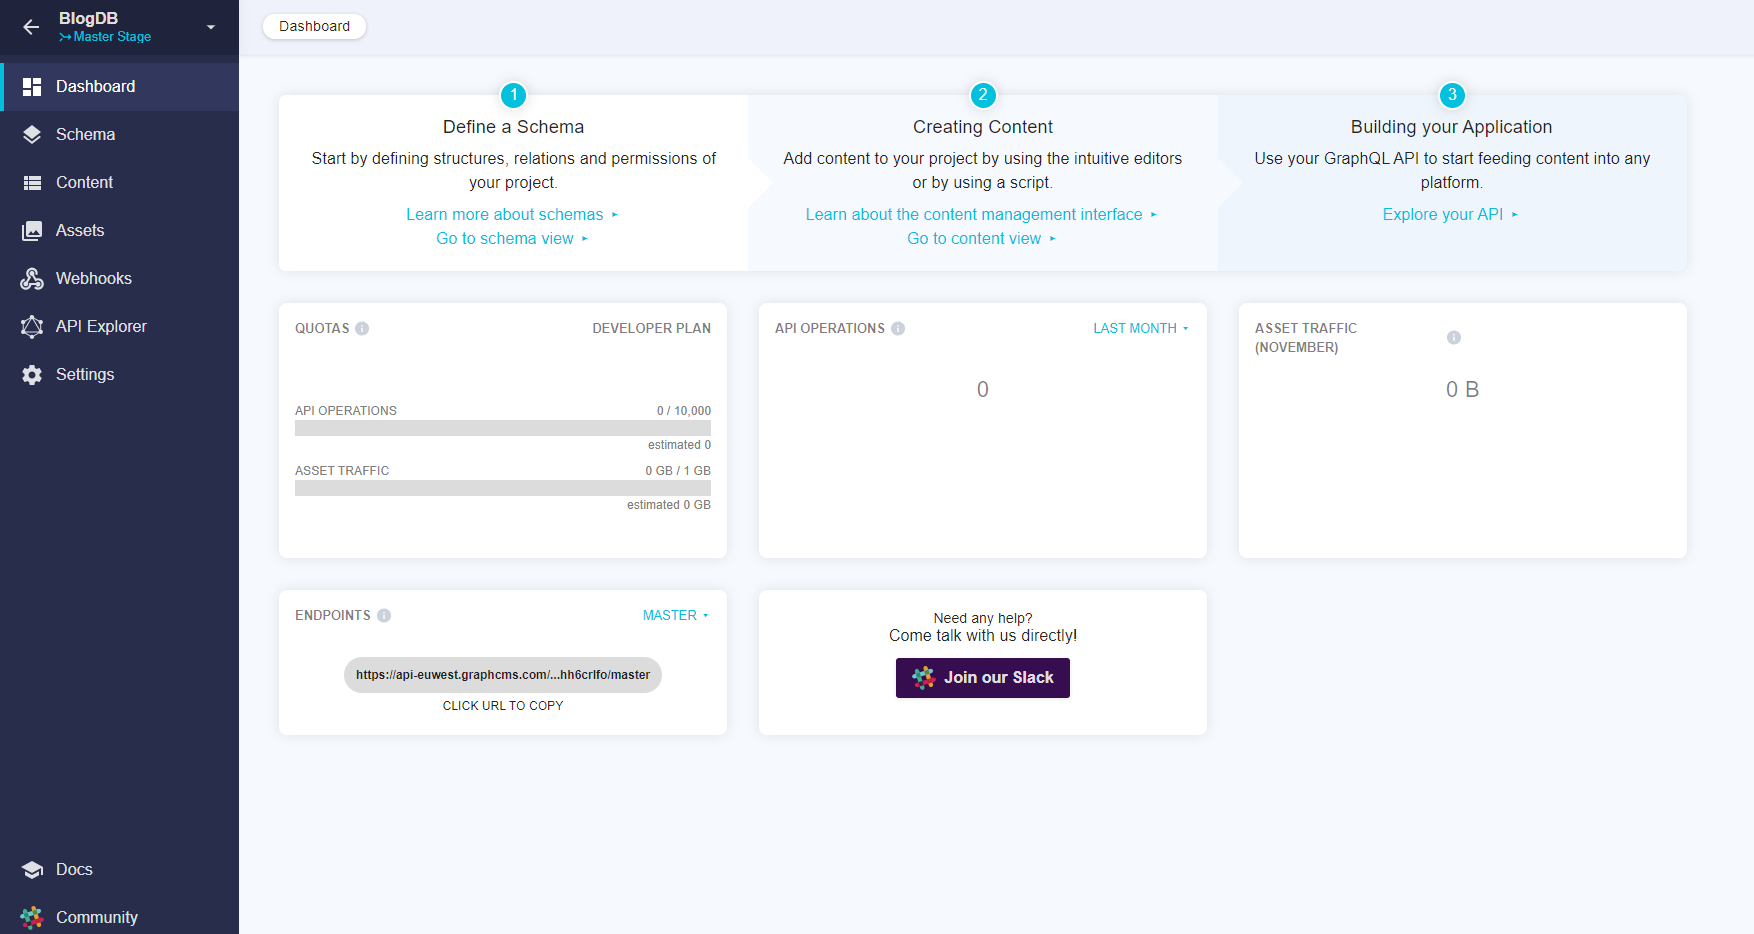 The GraphCMS project dashboard